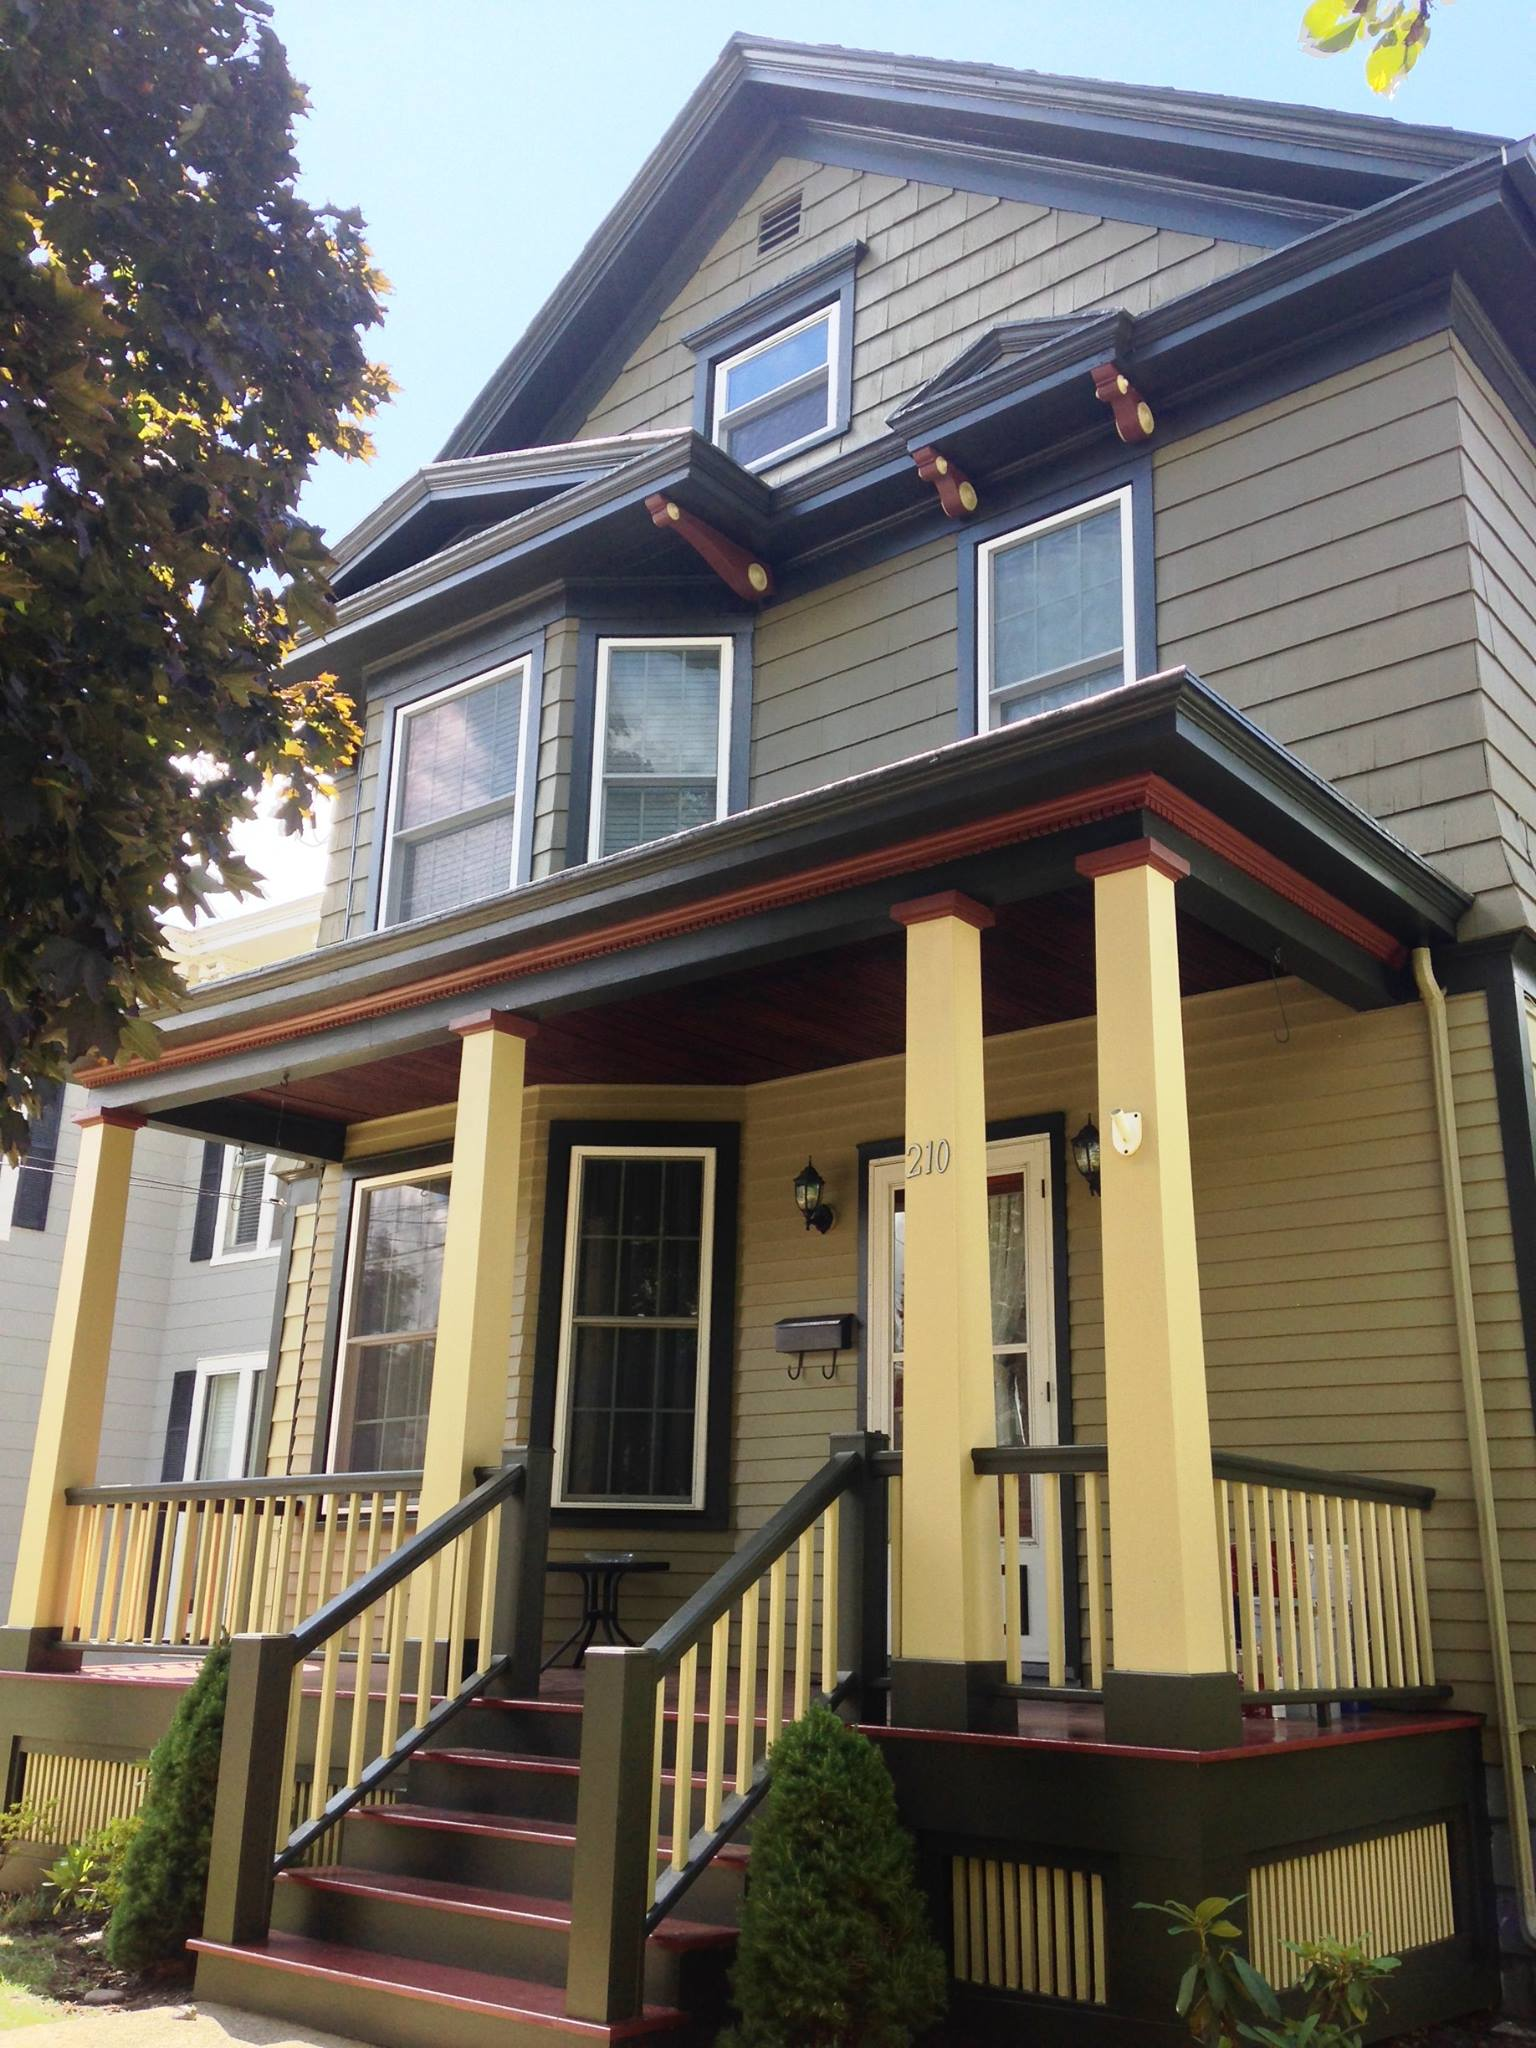 Wondering whether to get your house sided with vinyl or to get it painted One option is much more affordable AND more beautiful!